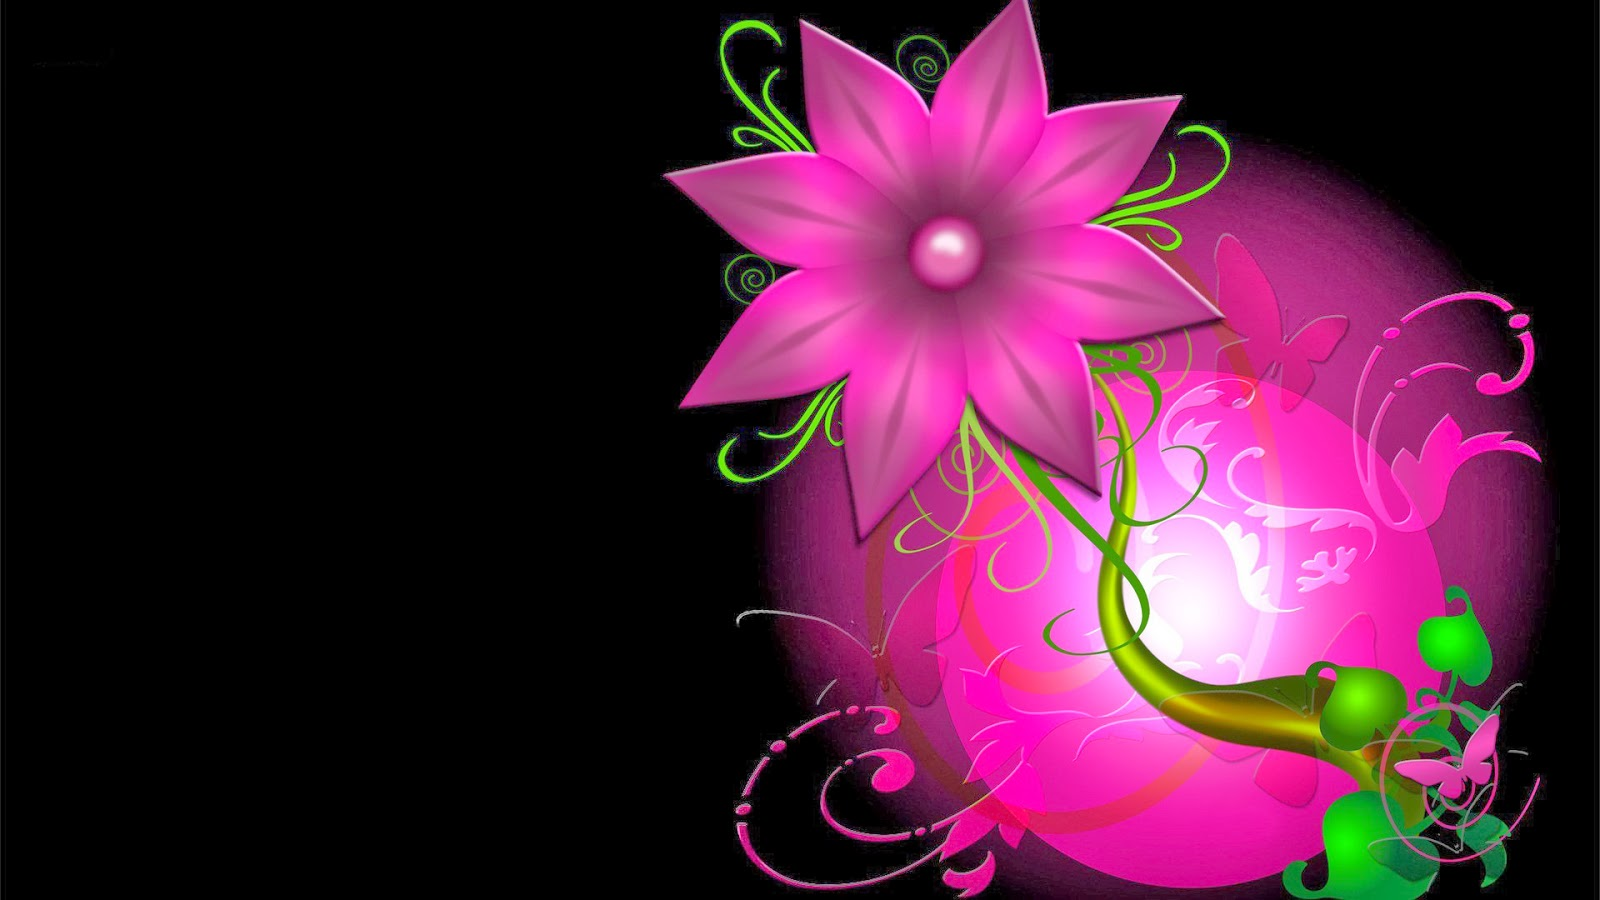 HD wallpapers 1080p widescreen Flowers Nice Pics Gallery 1600x900